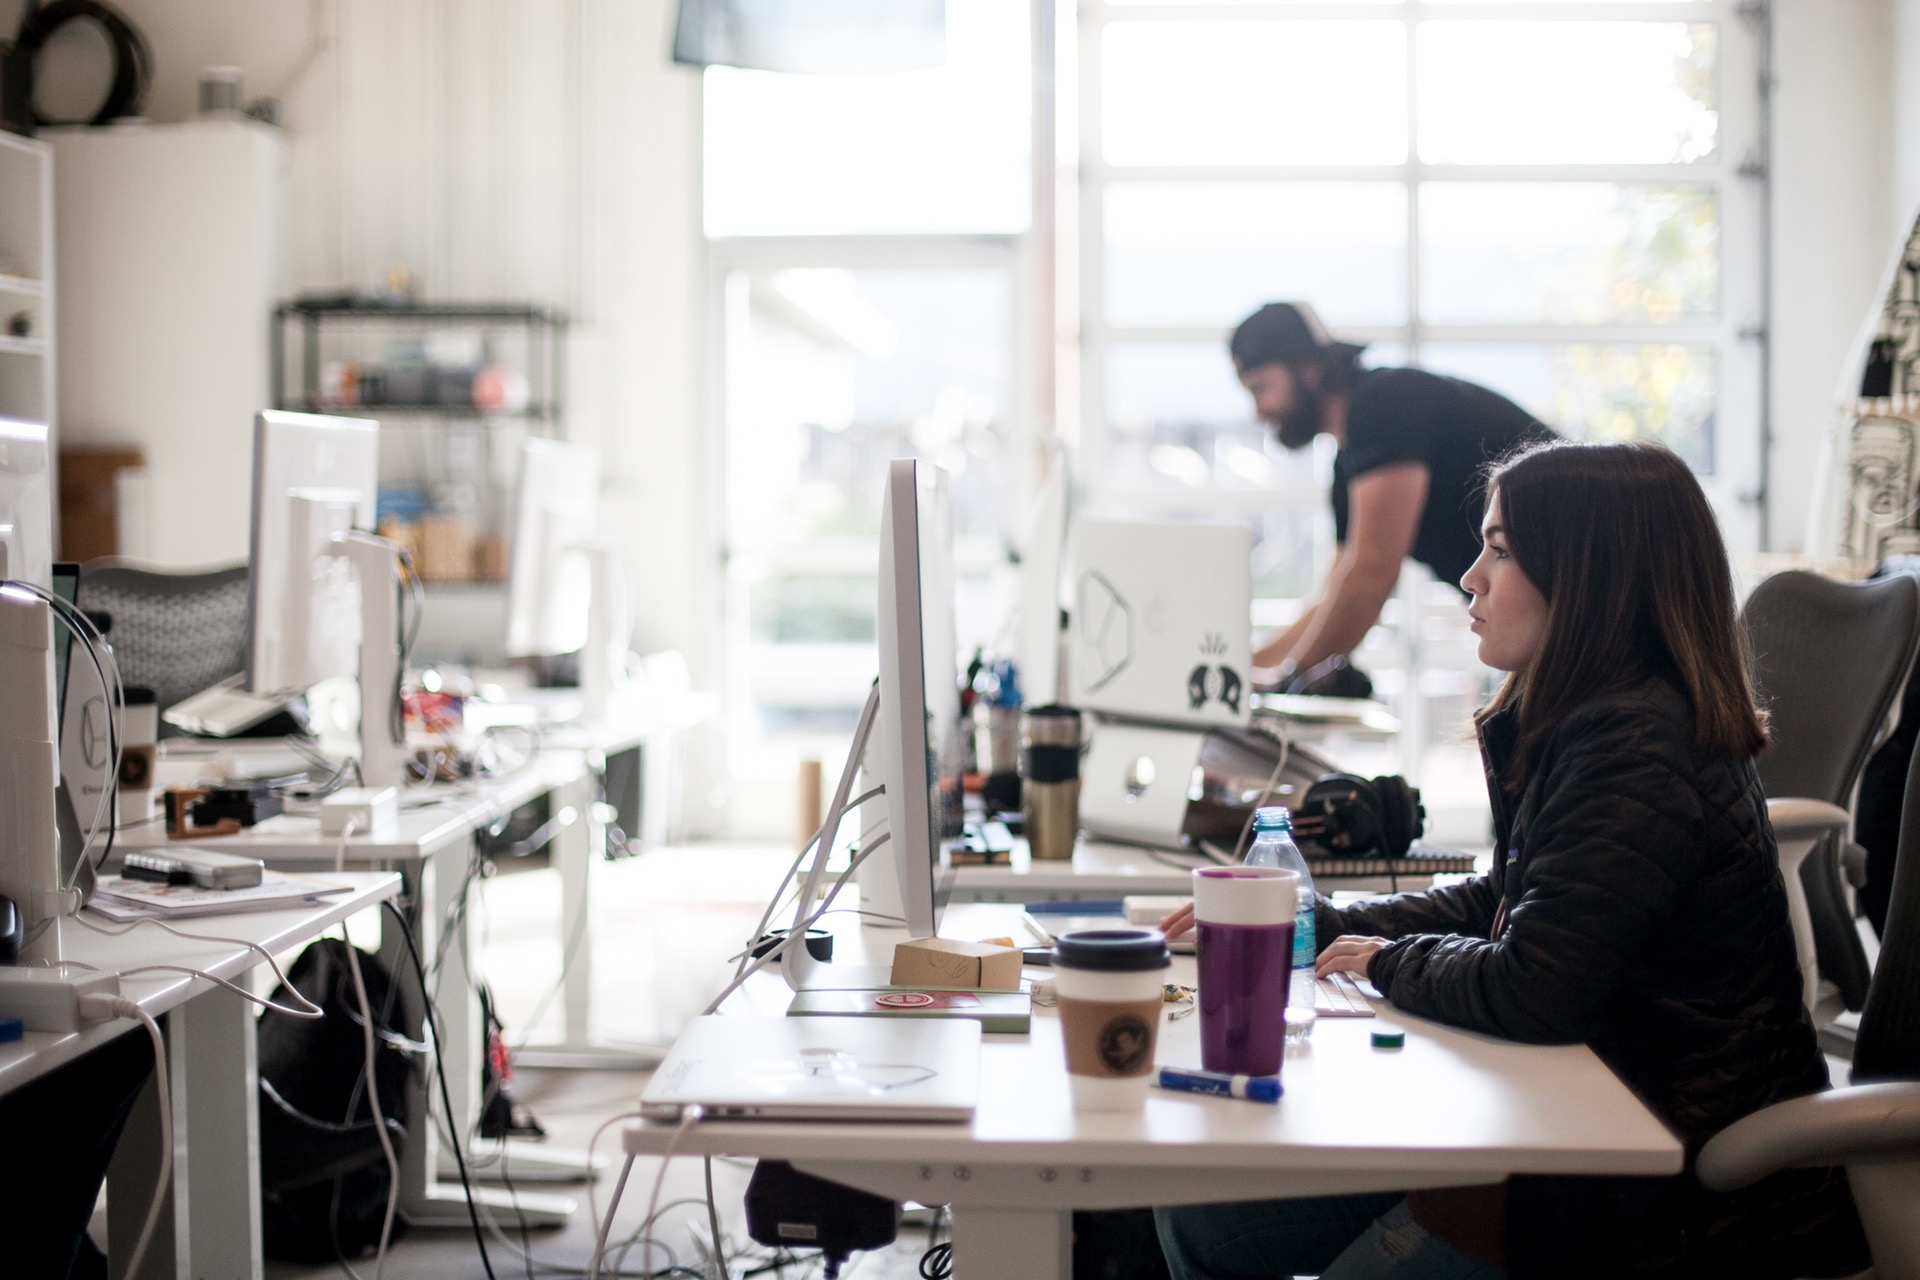 10 fastest-growing industries for executive jobs